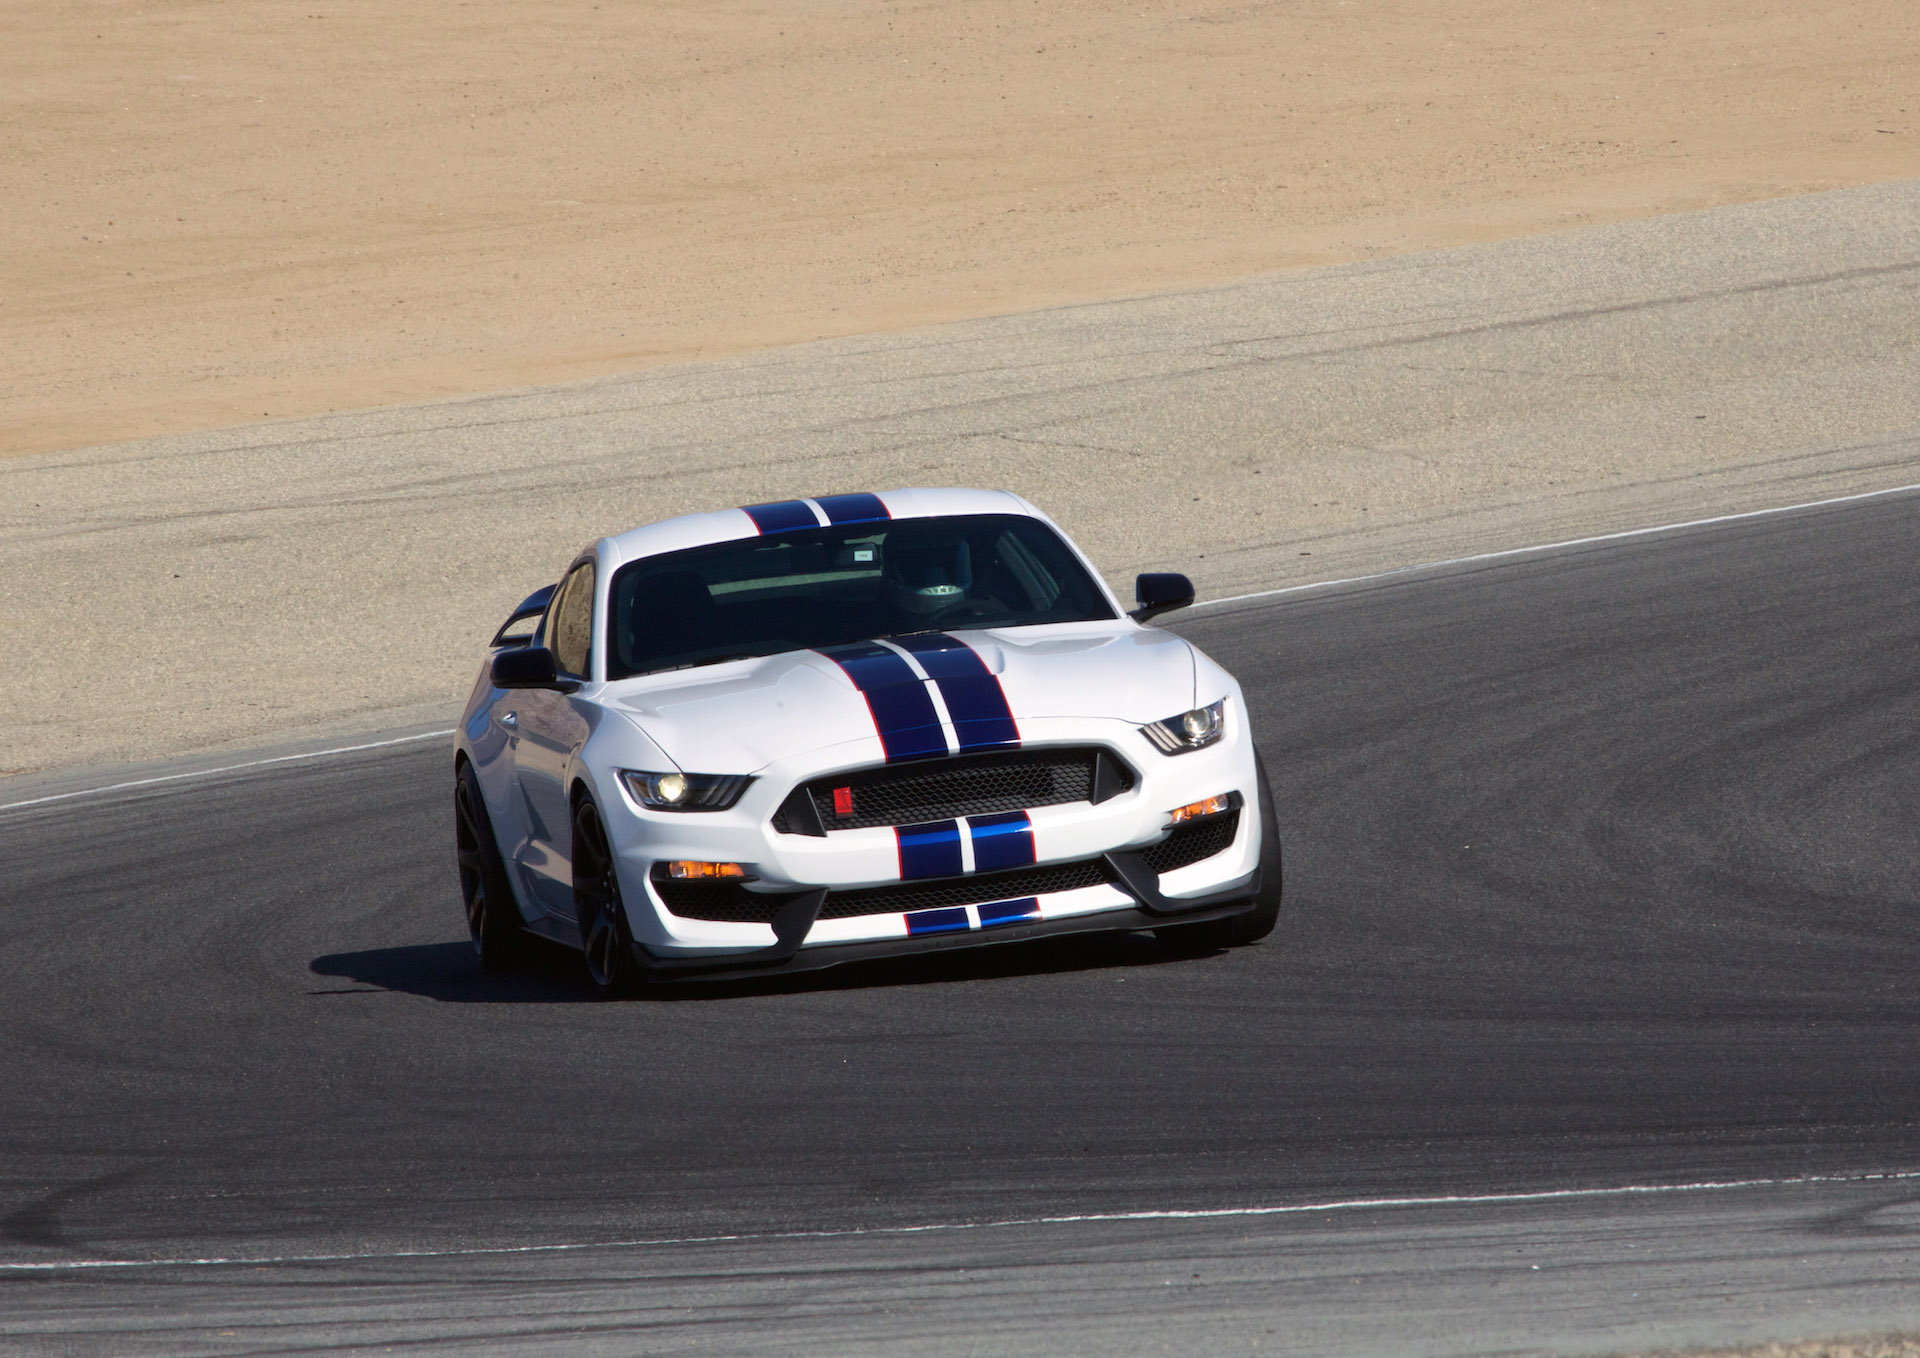 Gt350r Review >> 2016 Ford Mustang Shelby GT350R first drive review